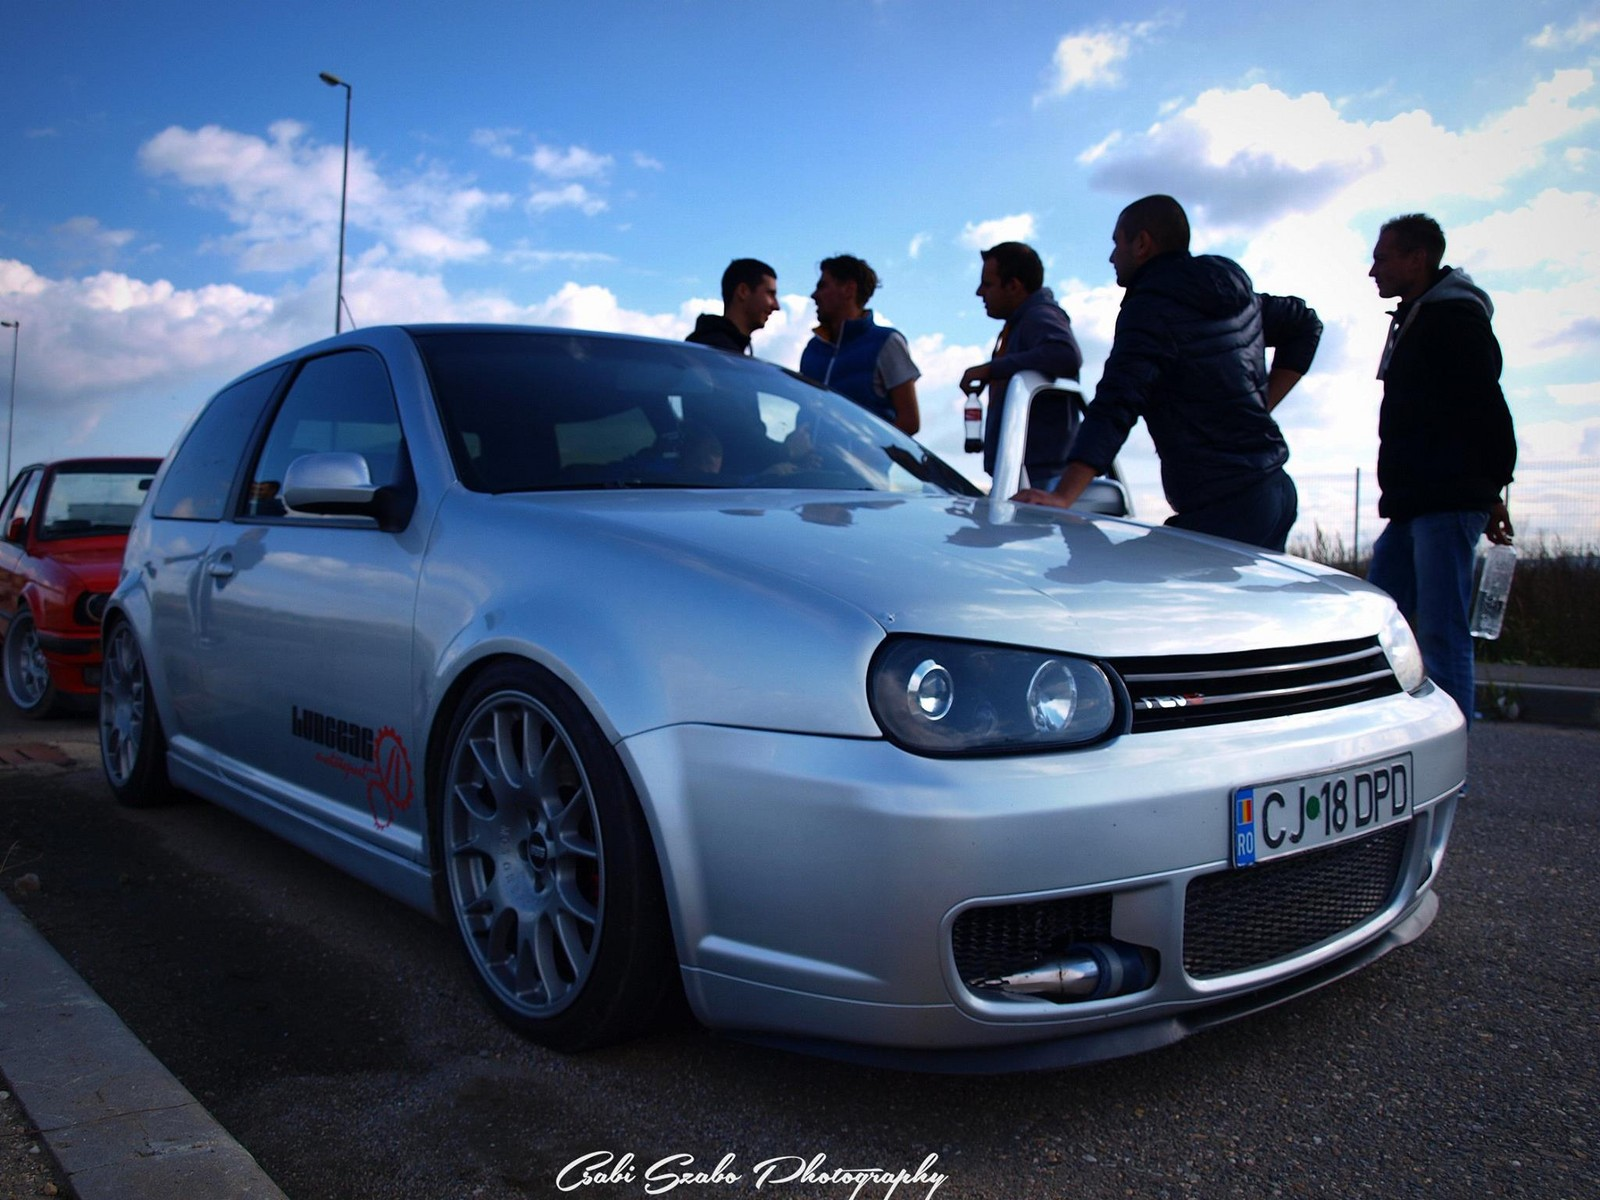 Gray 2003 Volkswagen Golf Golf MK4 GTI 1.8T 4motion